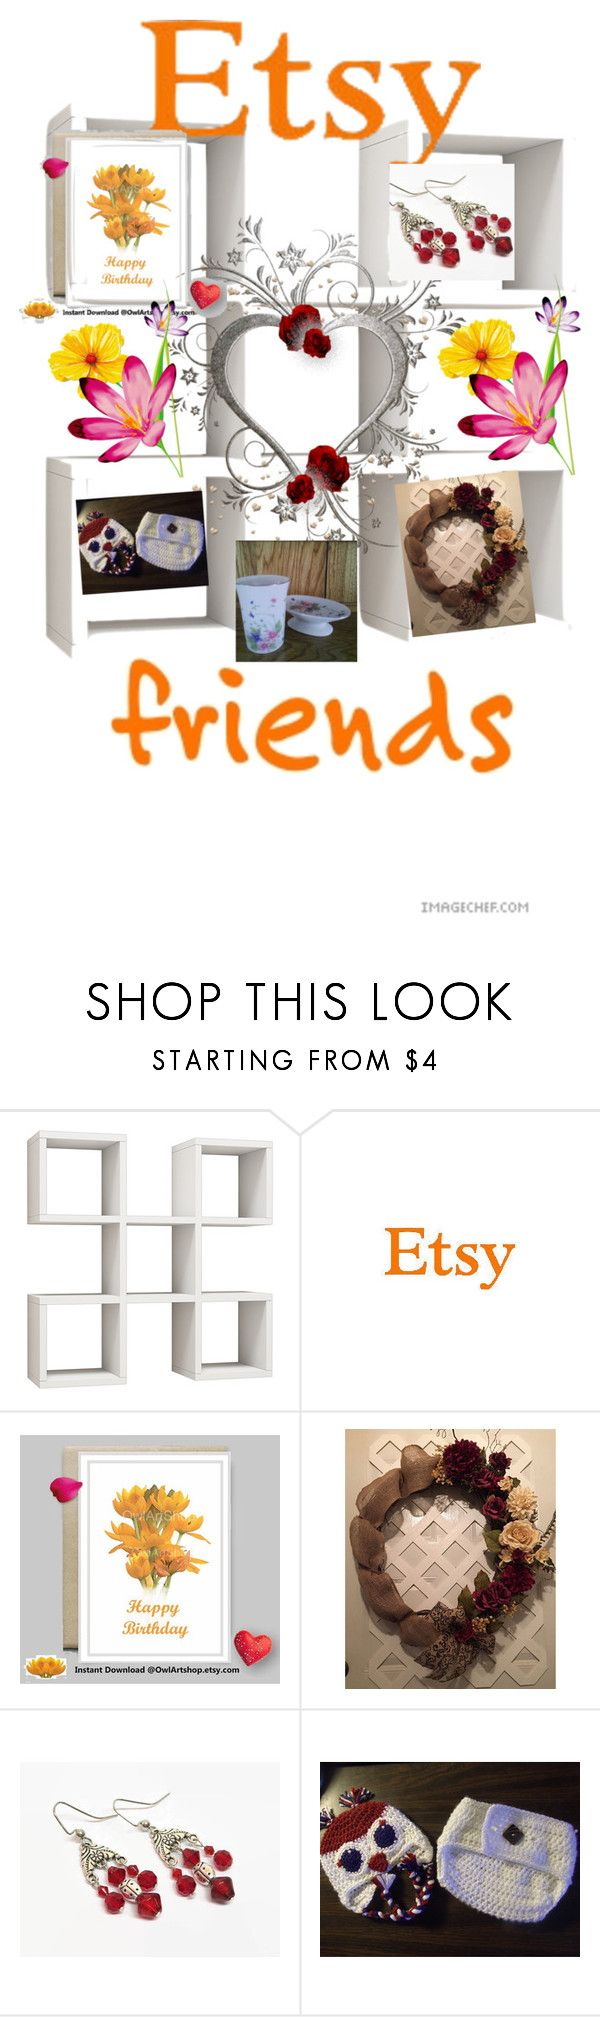 Etsy Friends by elsiescreativedesign on Polyvore featuring interior, interiors, interior design, home, home decor, interior decorating, giftforher, EtsySpecialT, EtsyTeamUnity and etsychaching